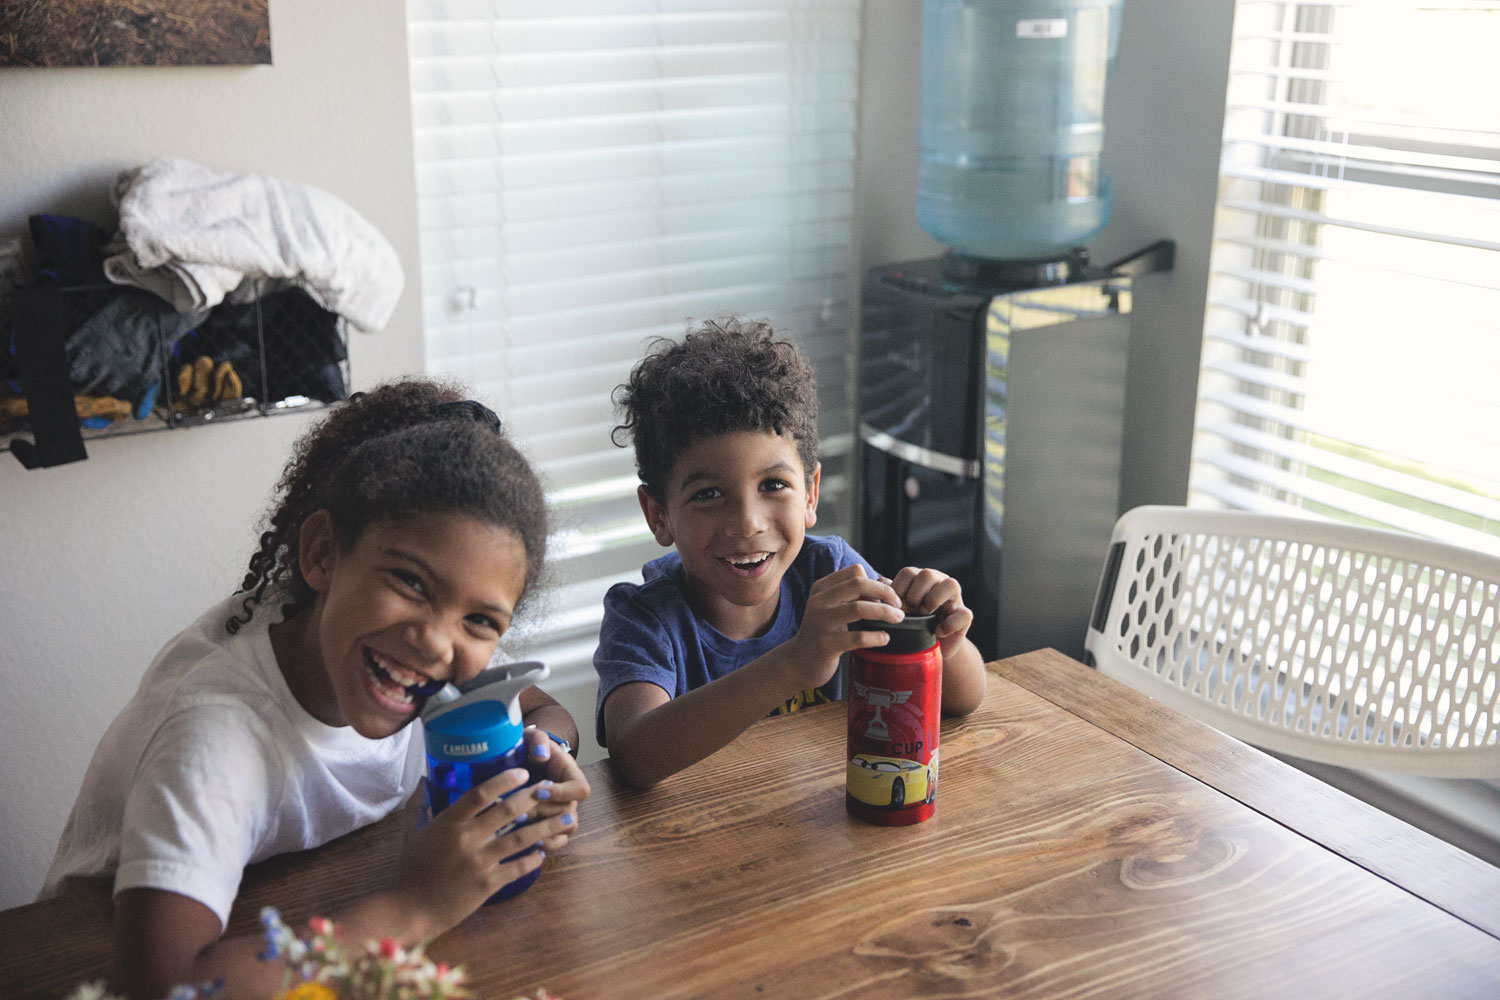 Biracial siblings laughing while sitting at the kitchen table in front of their Primo water dispenser.